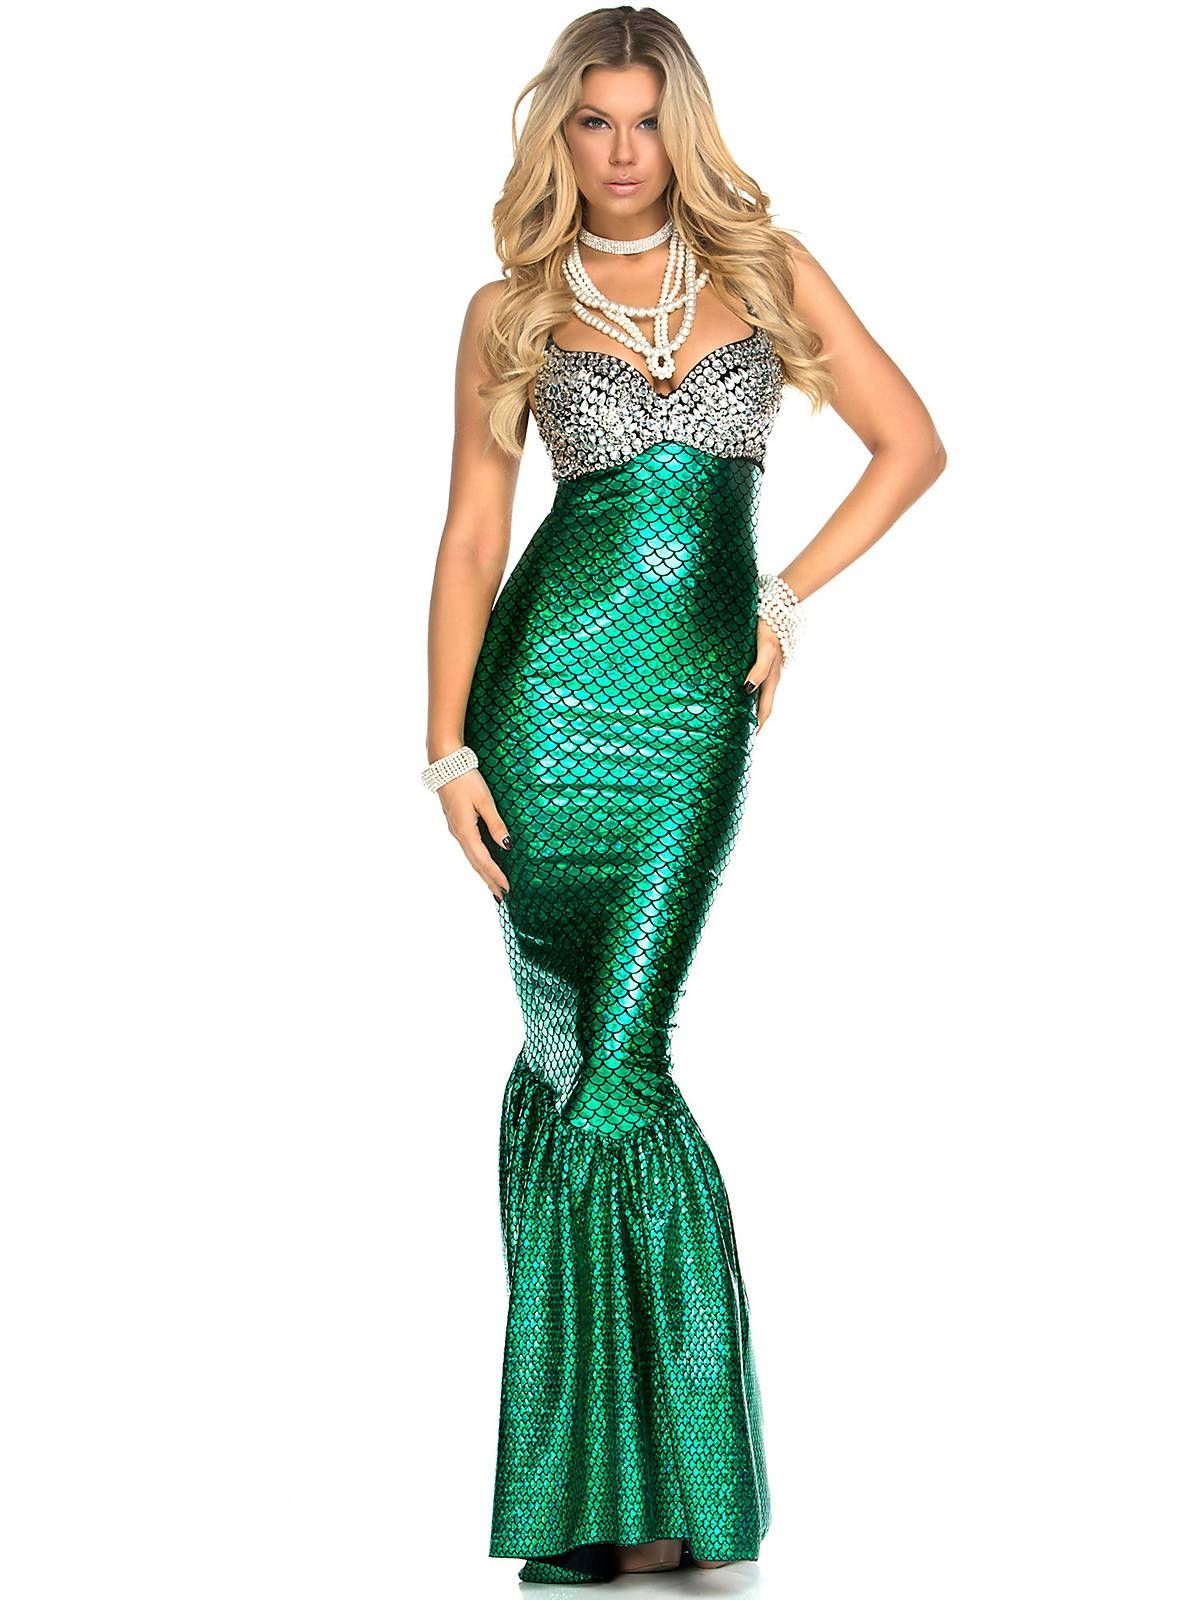 Under The Sea Costume | Wholesale Mermaids Costumes for Adults ...